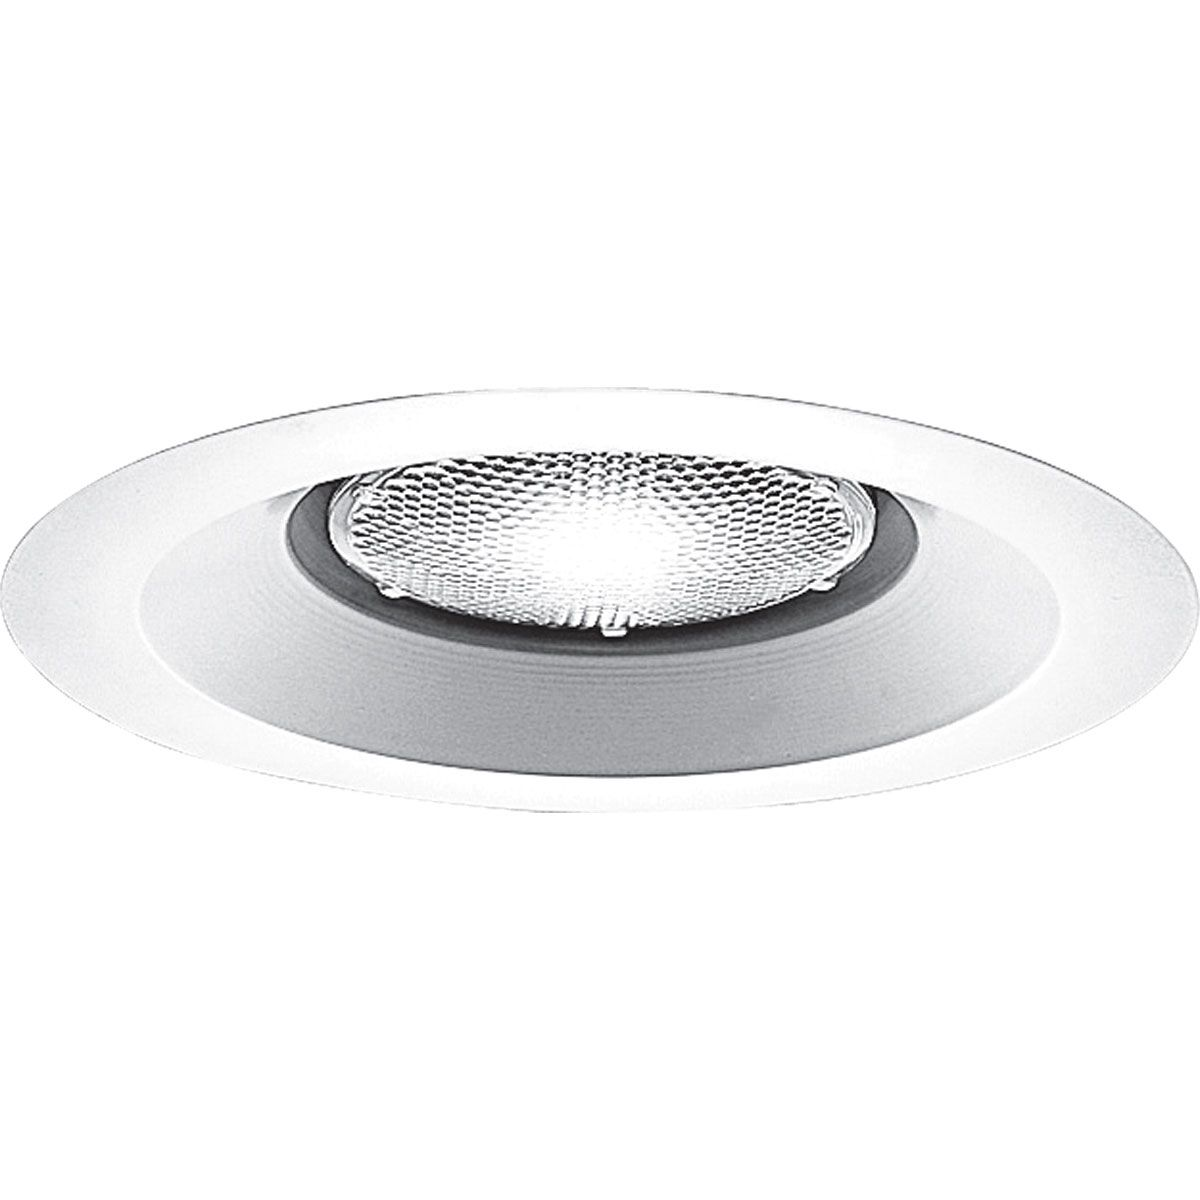 PROP8073WL-28 OPEN, SHOWER LIGHT TYPE; ALUMINUM MATERIAL; 7 3/4 INCH DIA SIZE; WHITE FINISH; LAMP TYPE PAR30 75 W, BR30 65 W USED ON; UL, CUL APPROVAL; WET LOCATION APPLICATION; NON INSULATED CEILING TYPE; 6 INCH NOMINAL APERTURE SIZE; ROUND APERTURE SHAPE, PROGRESS